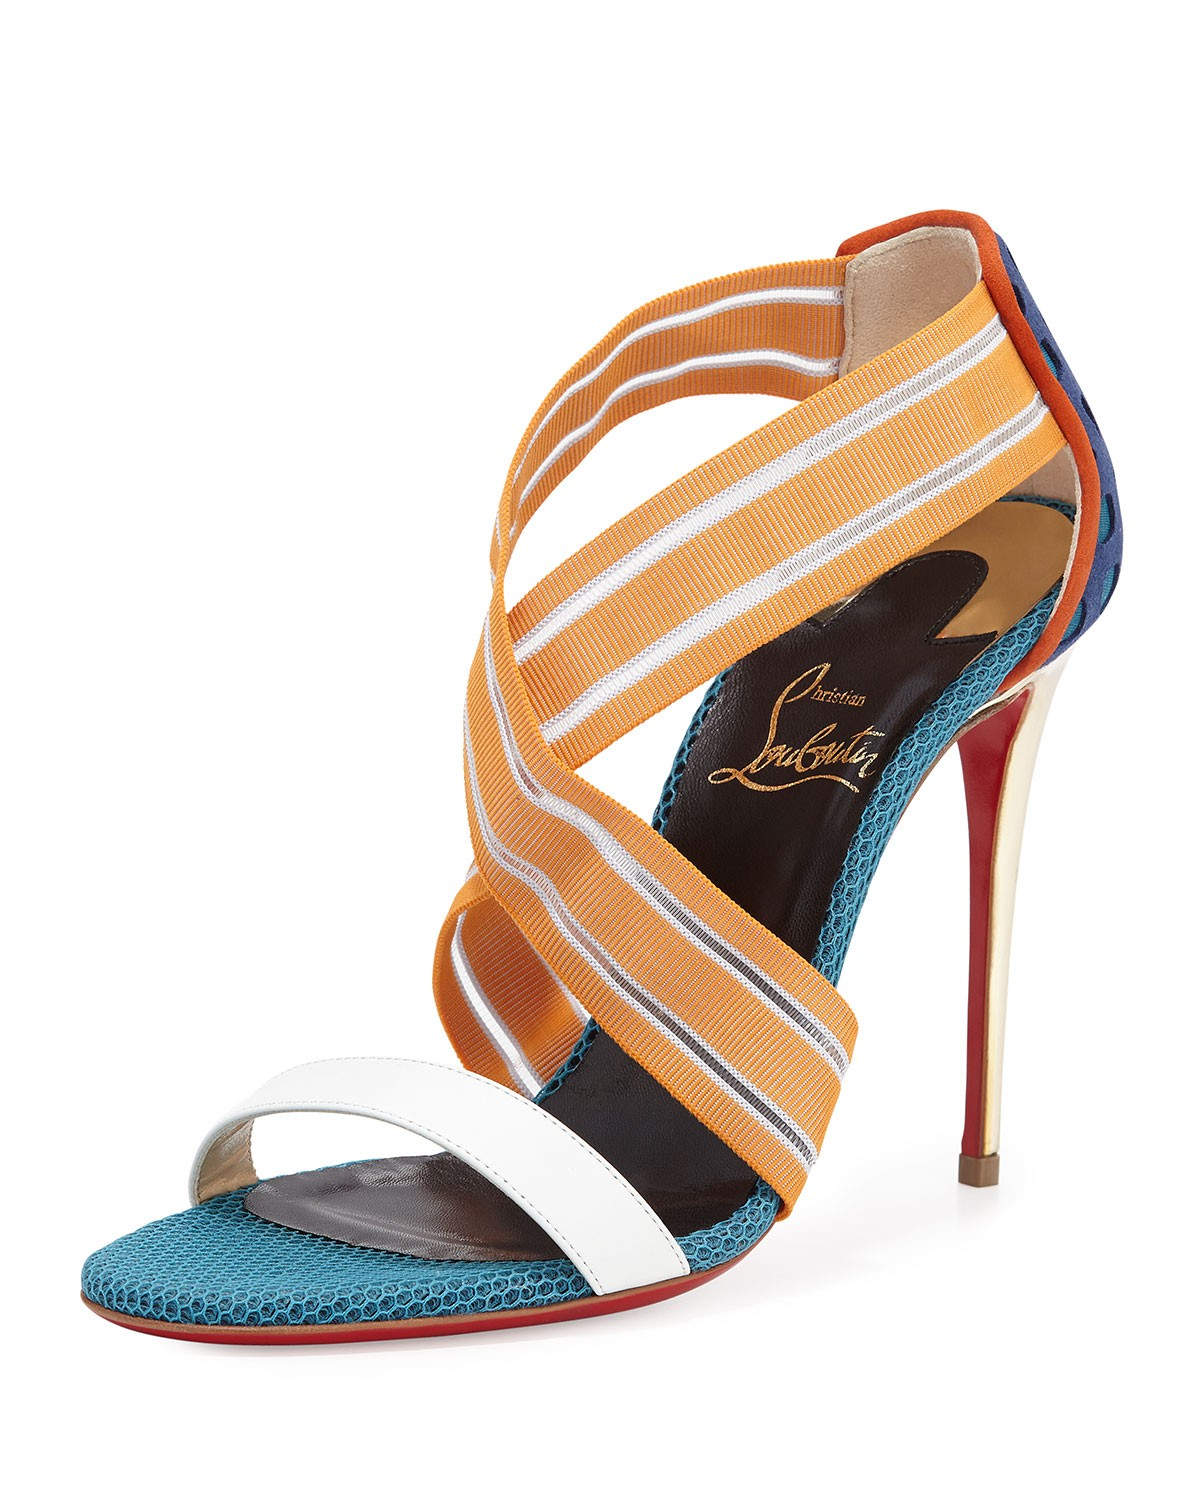 Elastigram Cross-Strap Red Sole Sandal, Multicolor - Christian Louboutin - Multi colors (35.0B/5.0B)